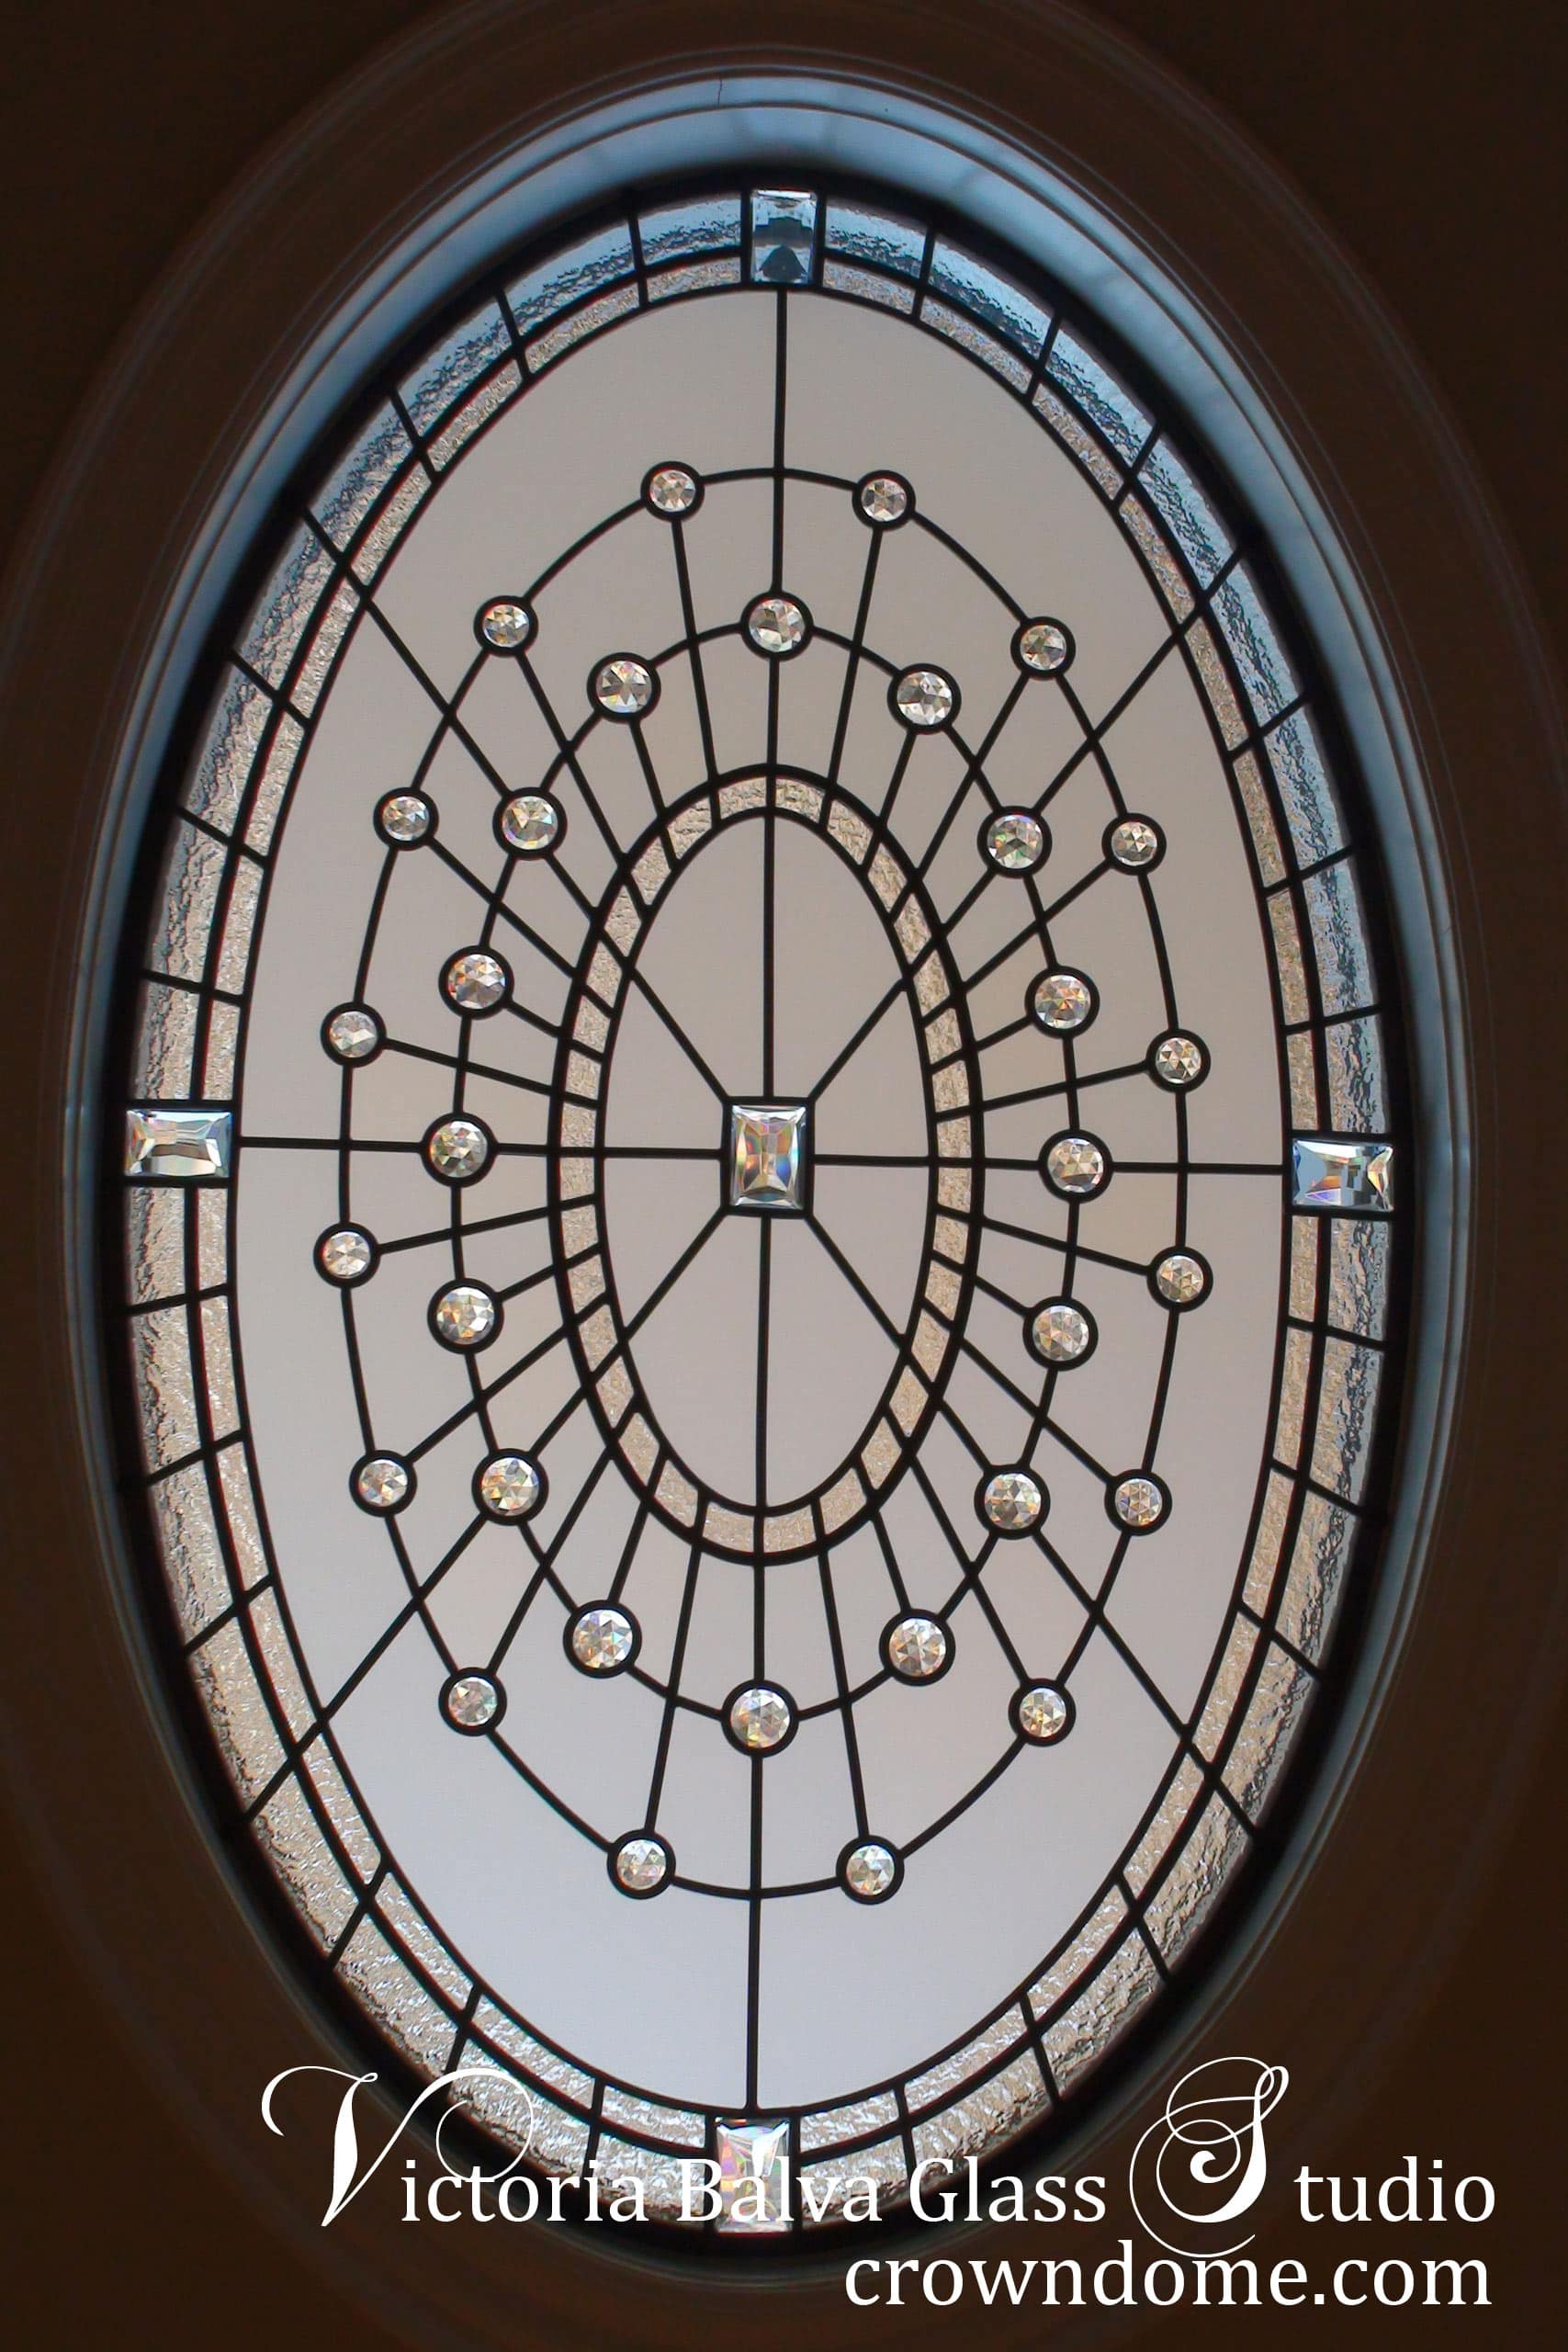 Large leaded glass oval window for a walk-in closet of a custom built residence to add privacy and style. Leaded glass window design combines classic styling and new materials to add personality and soul to the leaded glass window project. Glass design by glass artist Victoria Balva